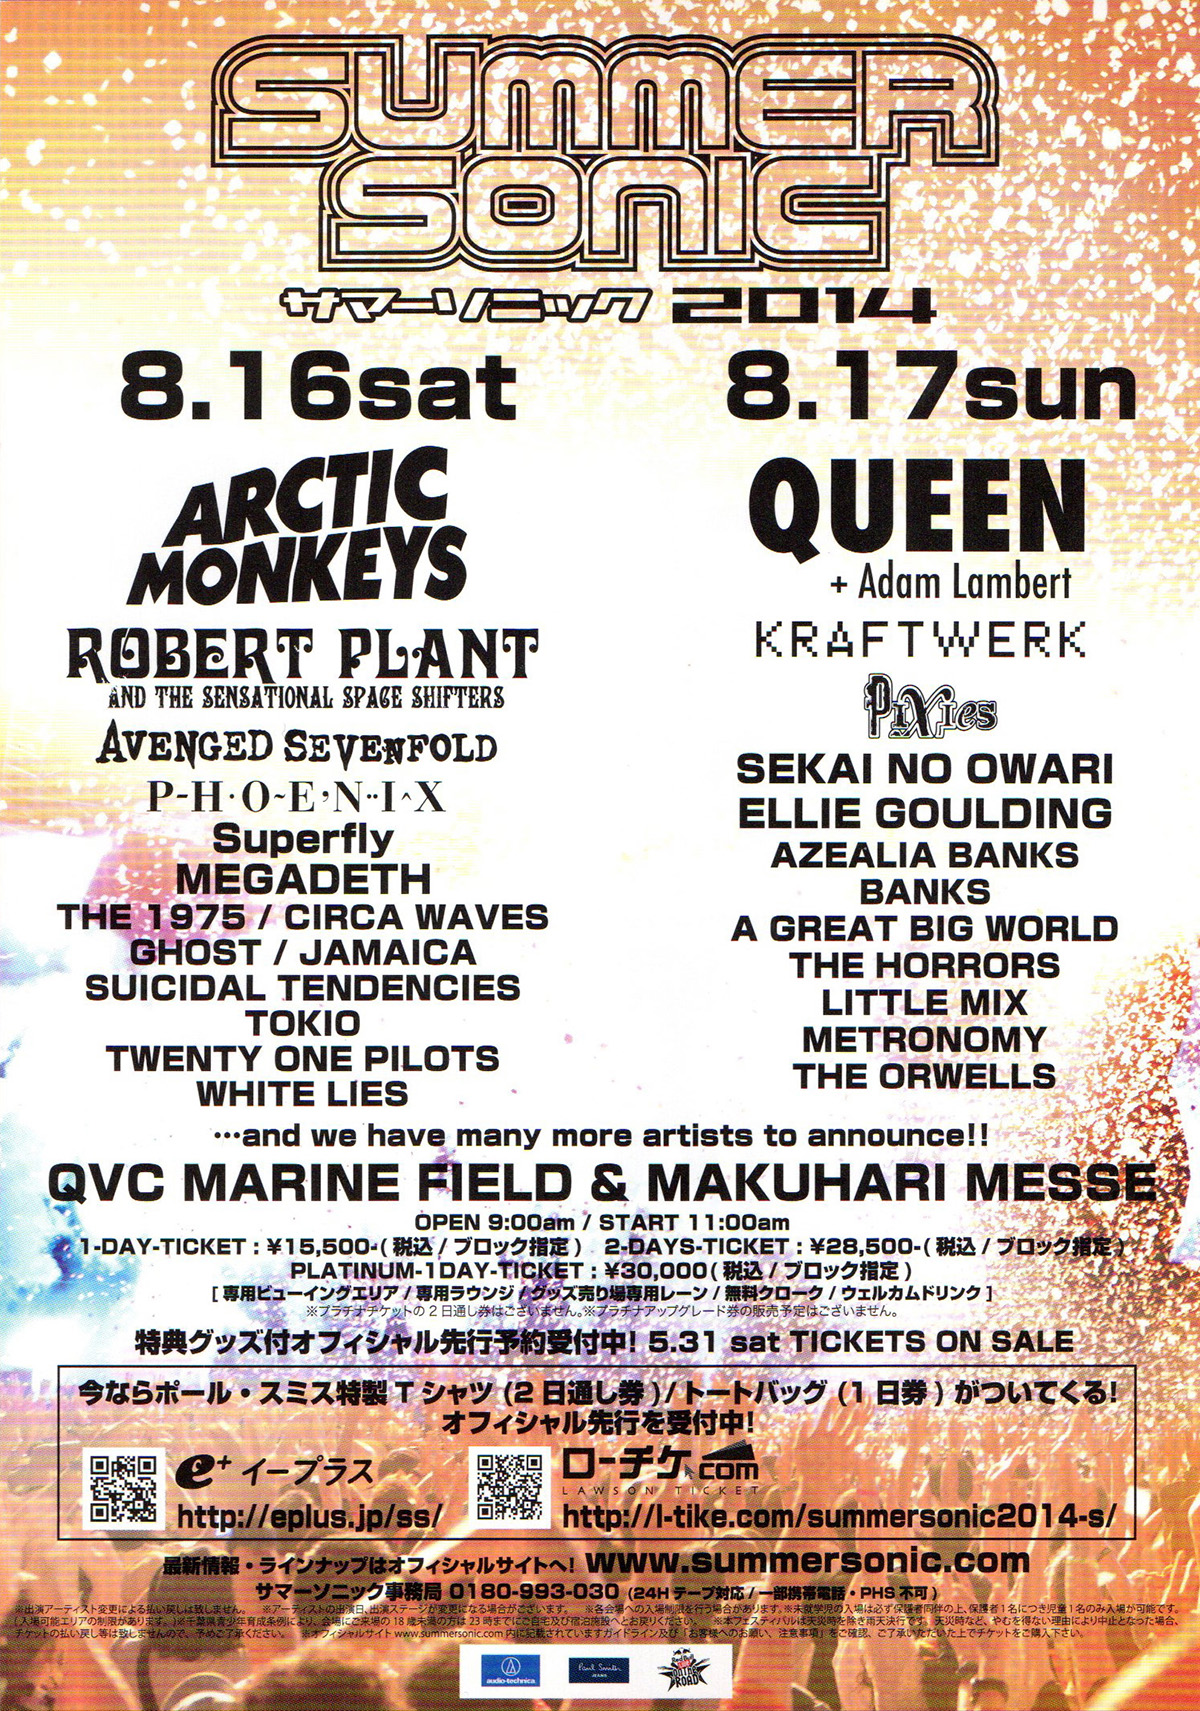 Queen + Adam Lambert at the Summer Sonic on 17.08.2014